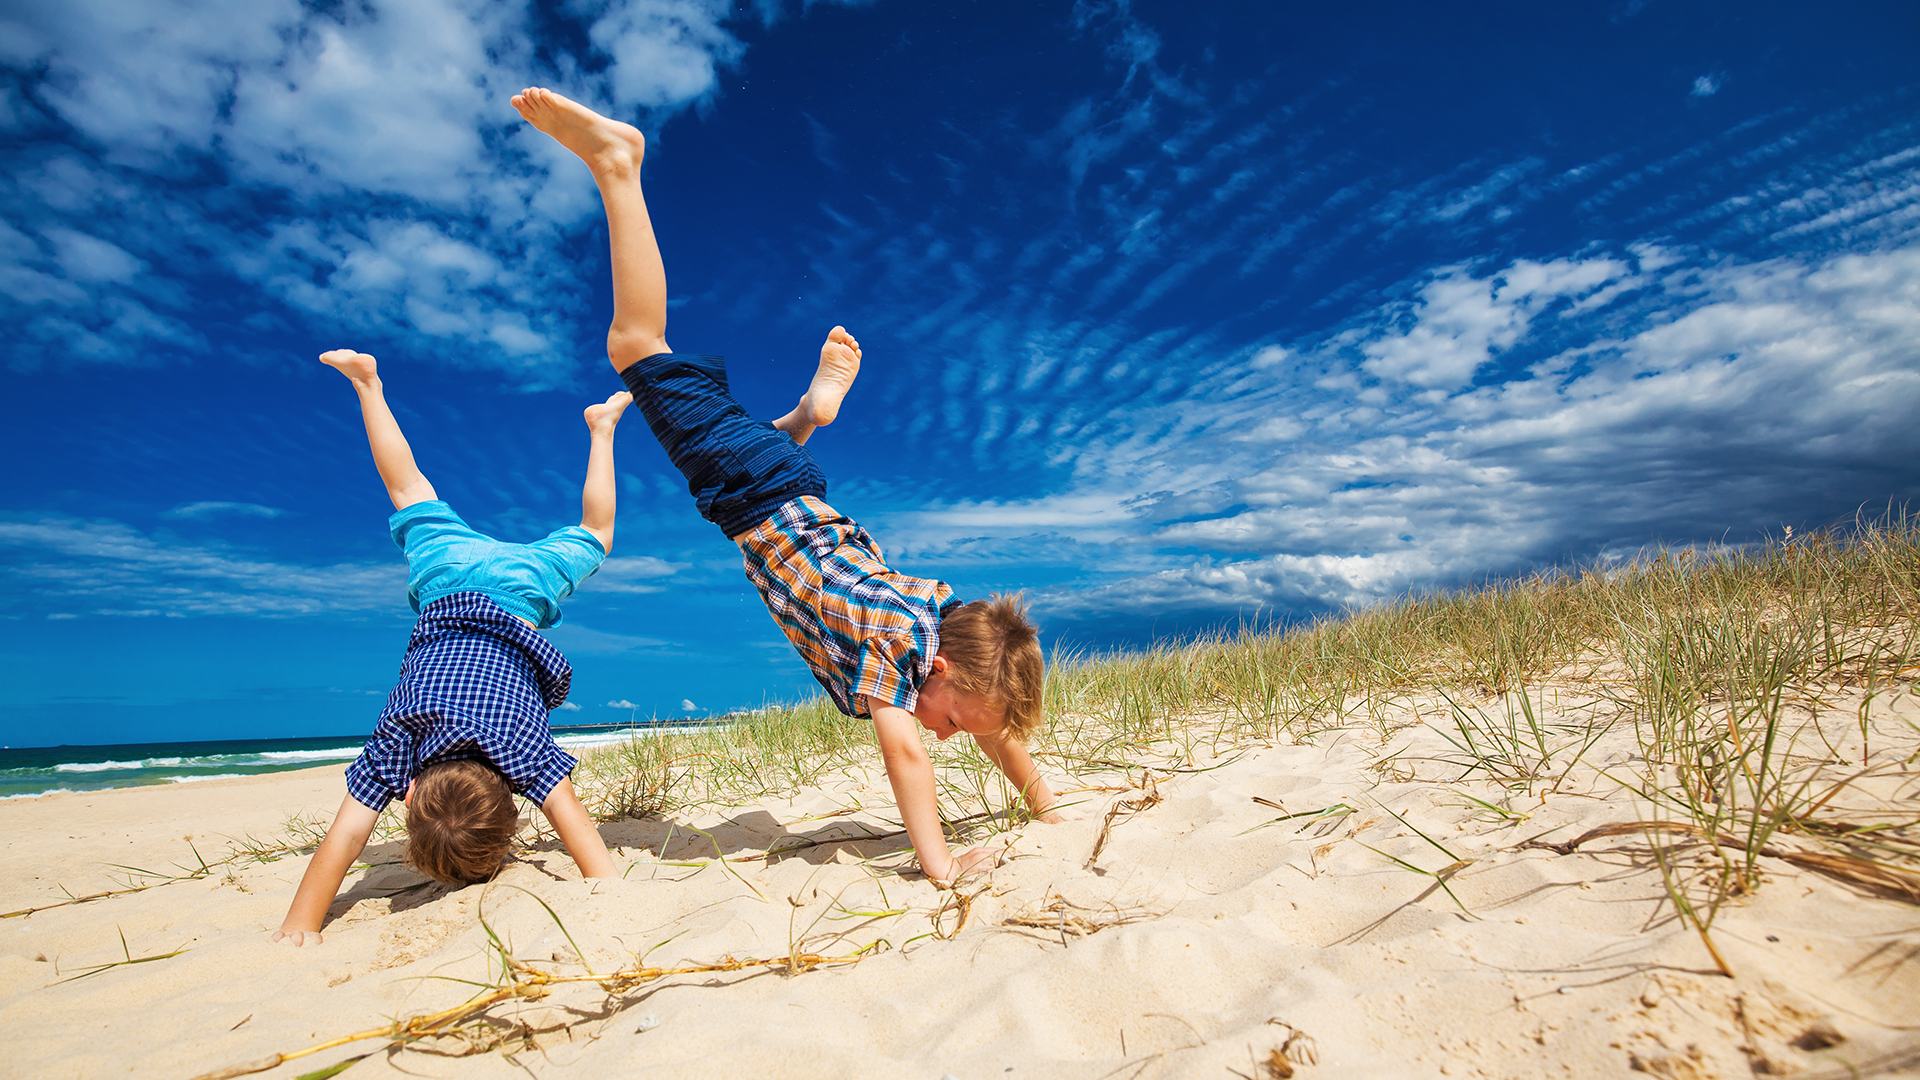 Young happy boys having fun on tropical beach, doing hand stands